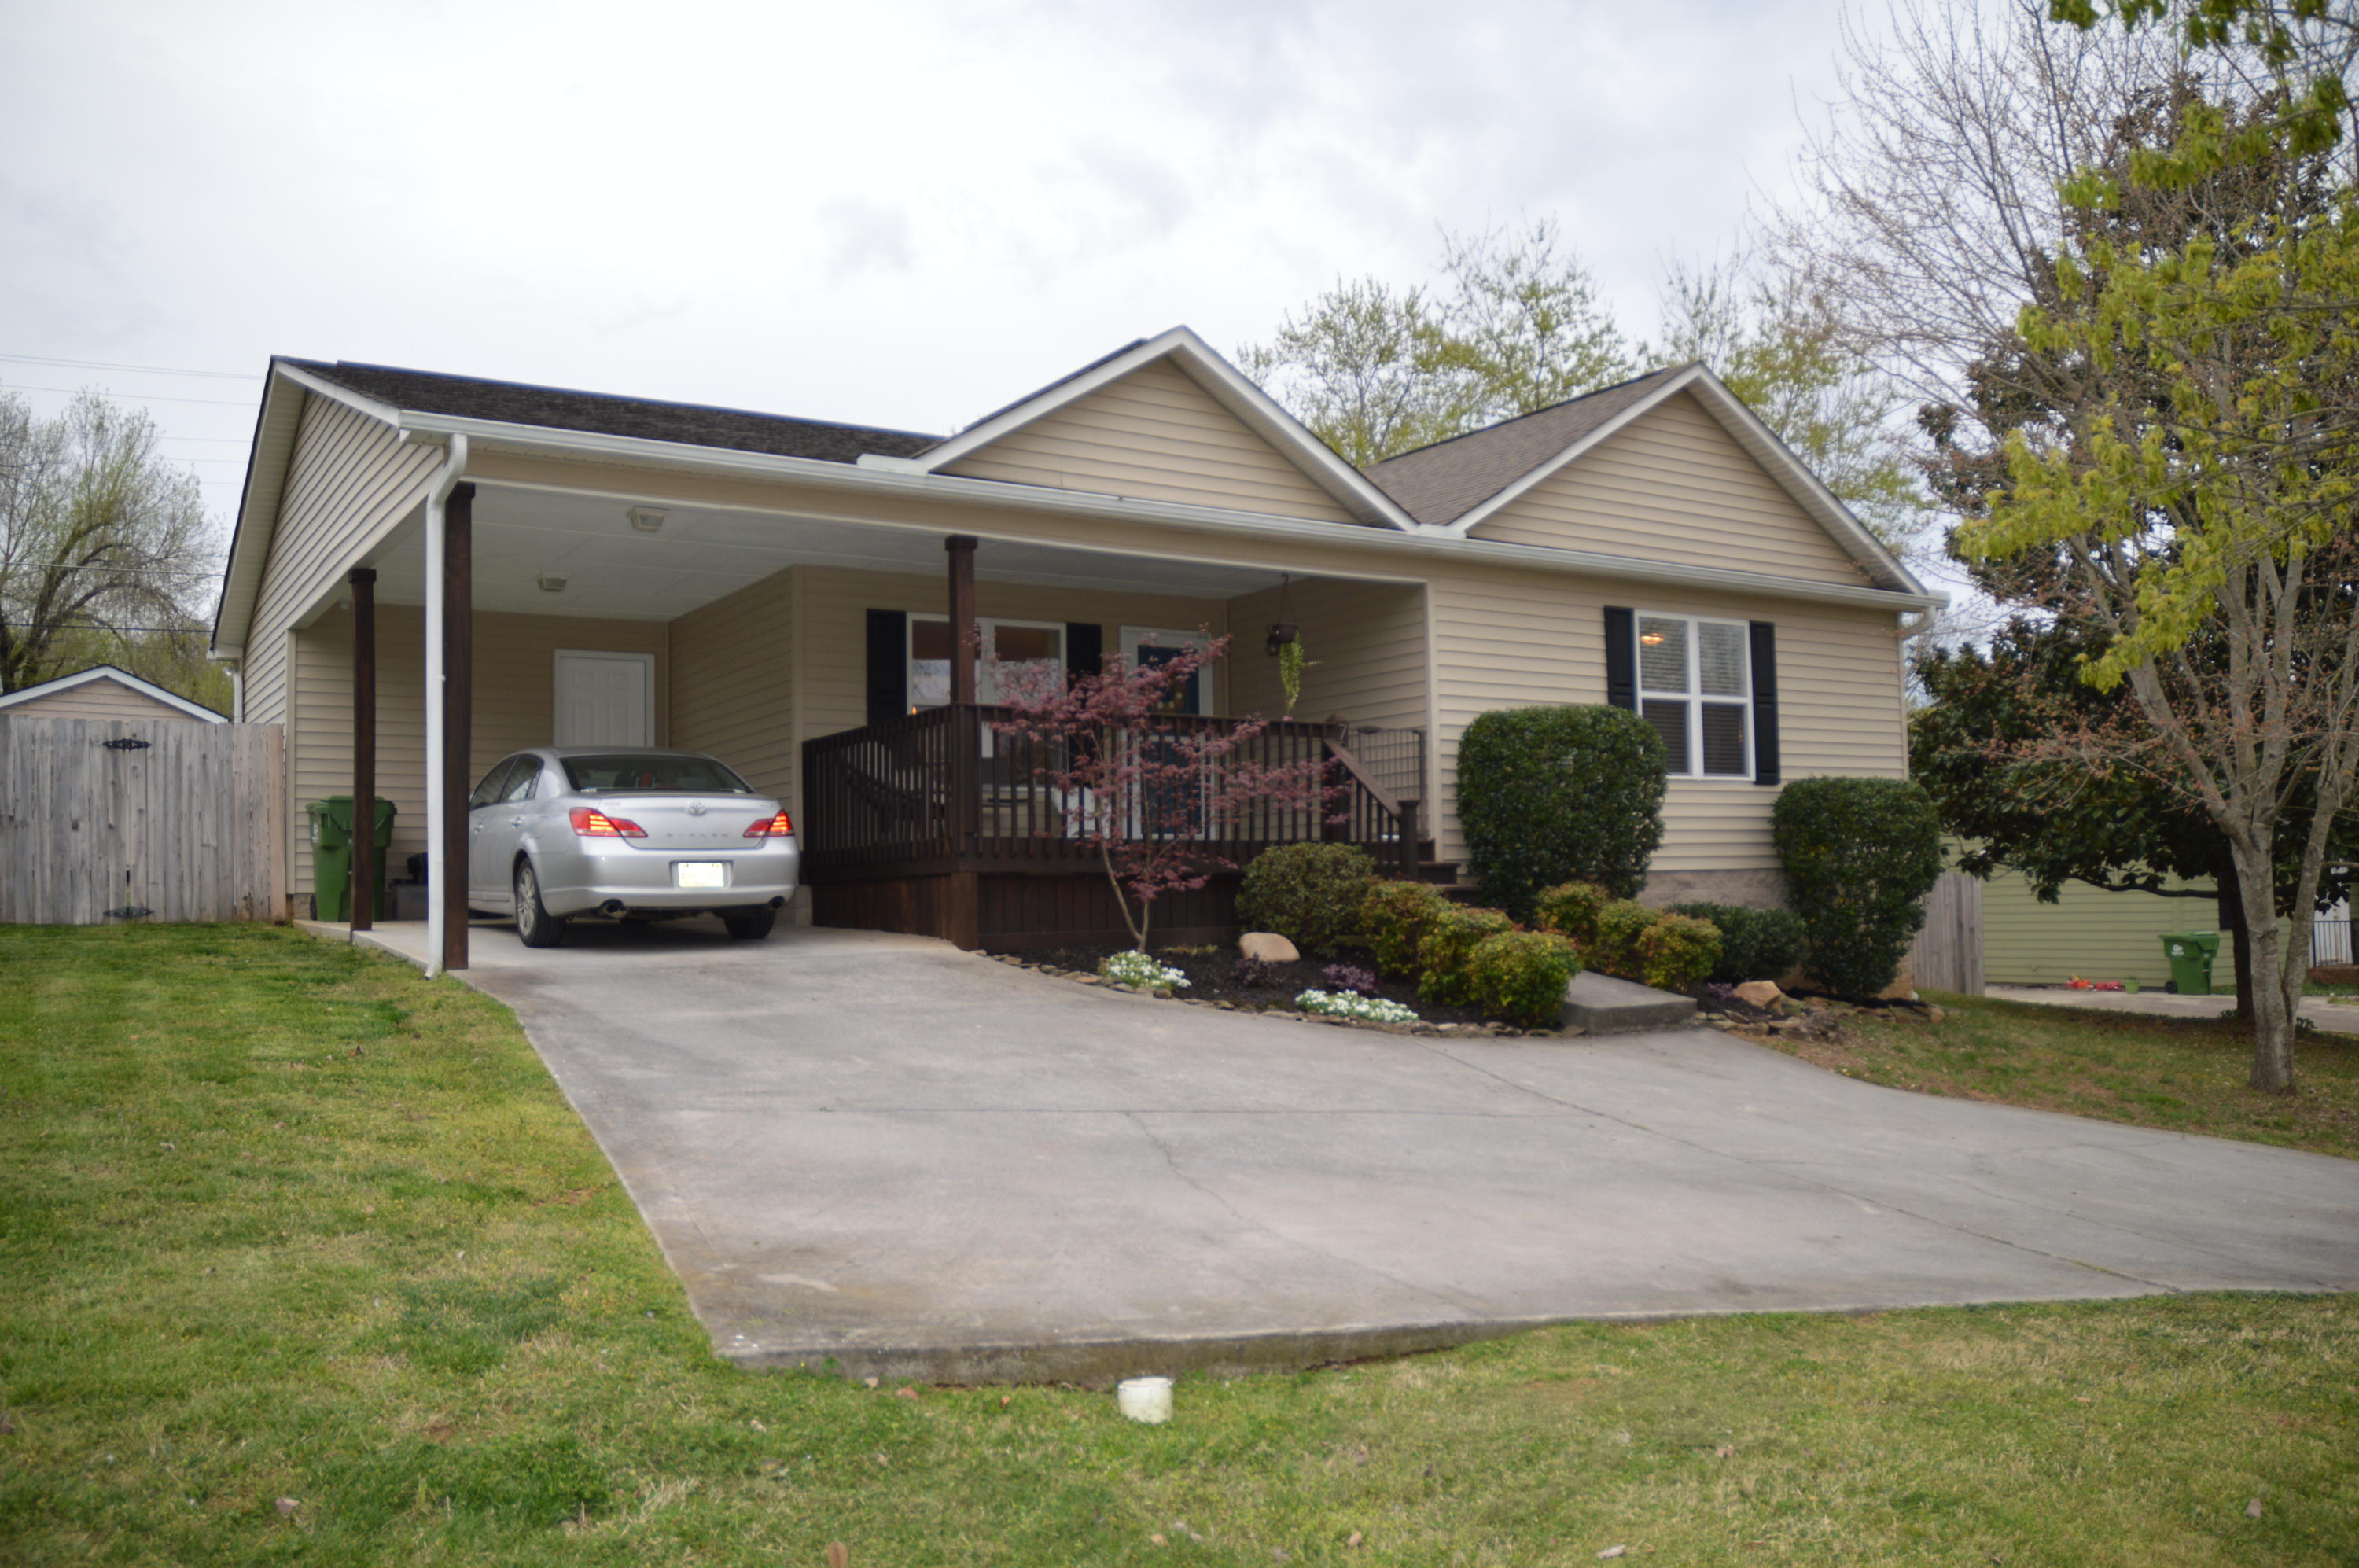 709 Gladstone Circle, Maryville, Tennessee 37804, 3 Bedrooms Bedrooms, ,2 BathroomsBathrooms,Single Family,For Sale,Gladstone,1075437